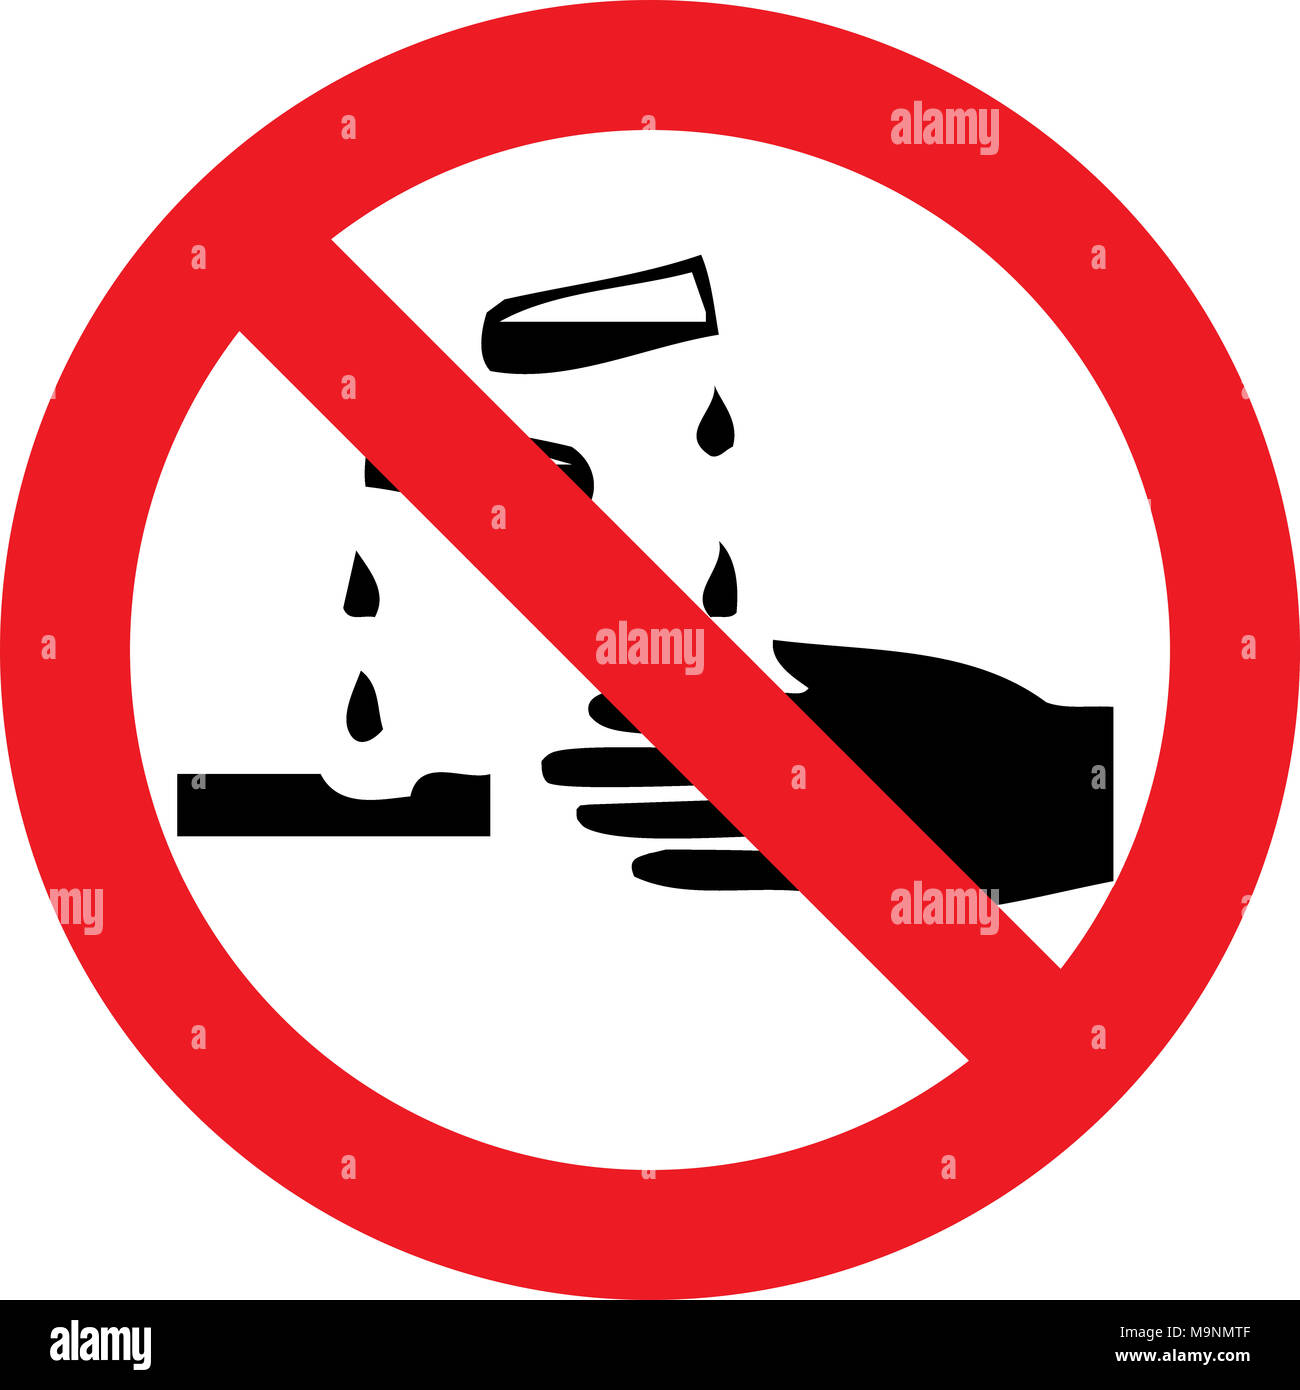 Corrosive label stock photos corrosive label stock images alamy no corrosive substances allowed sign stock image biocorpaavc Gallery